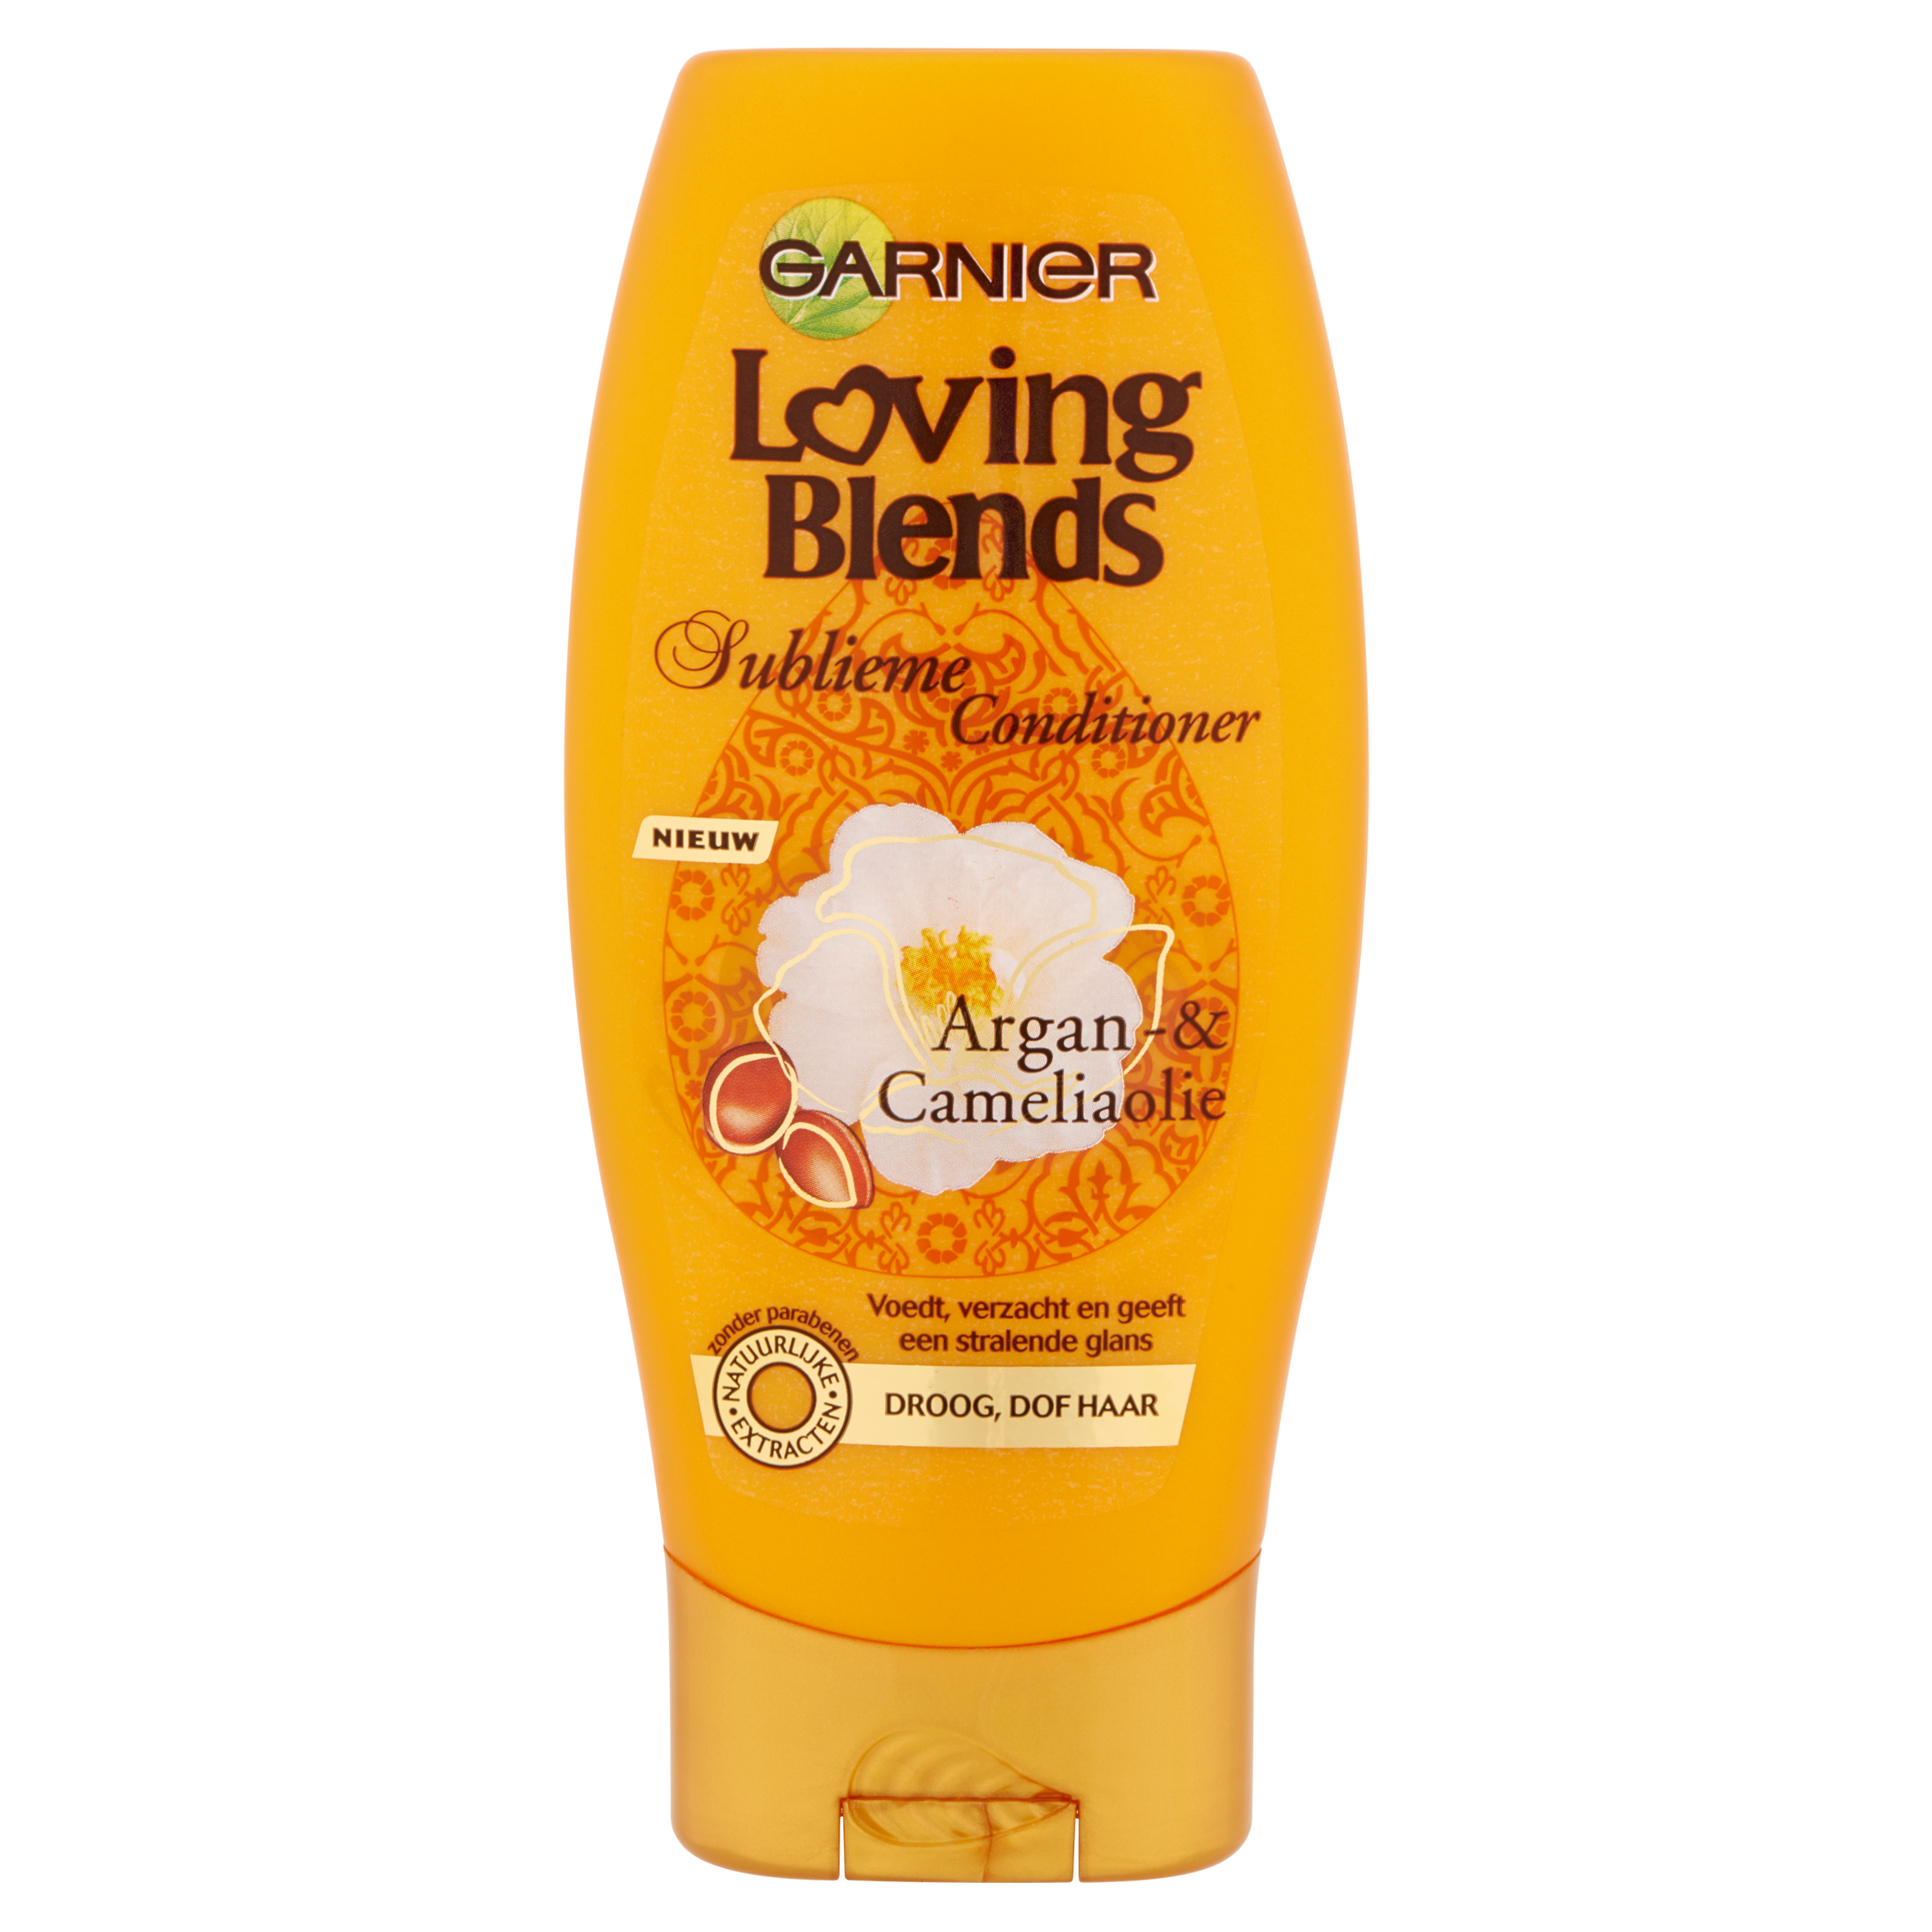 Garnier Loving Blends Sublieme Conditioner Argan- & Cameliaolie 200 ml